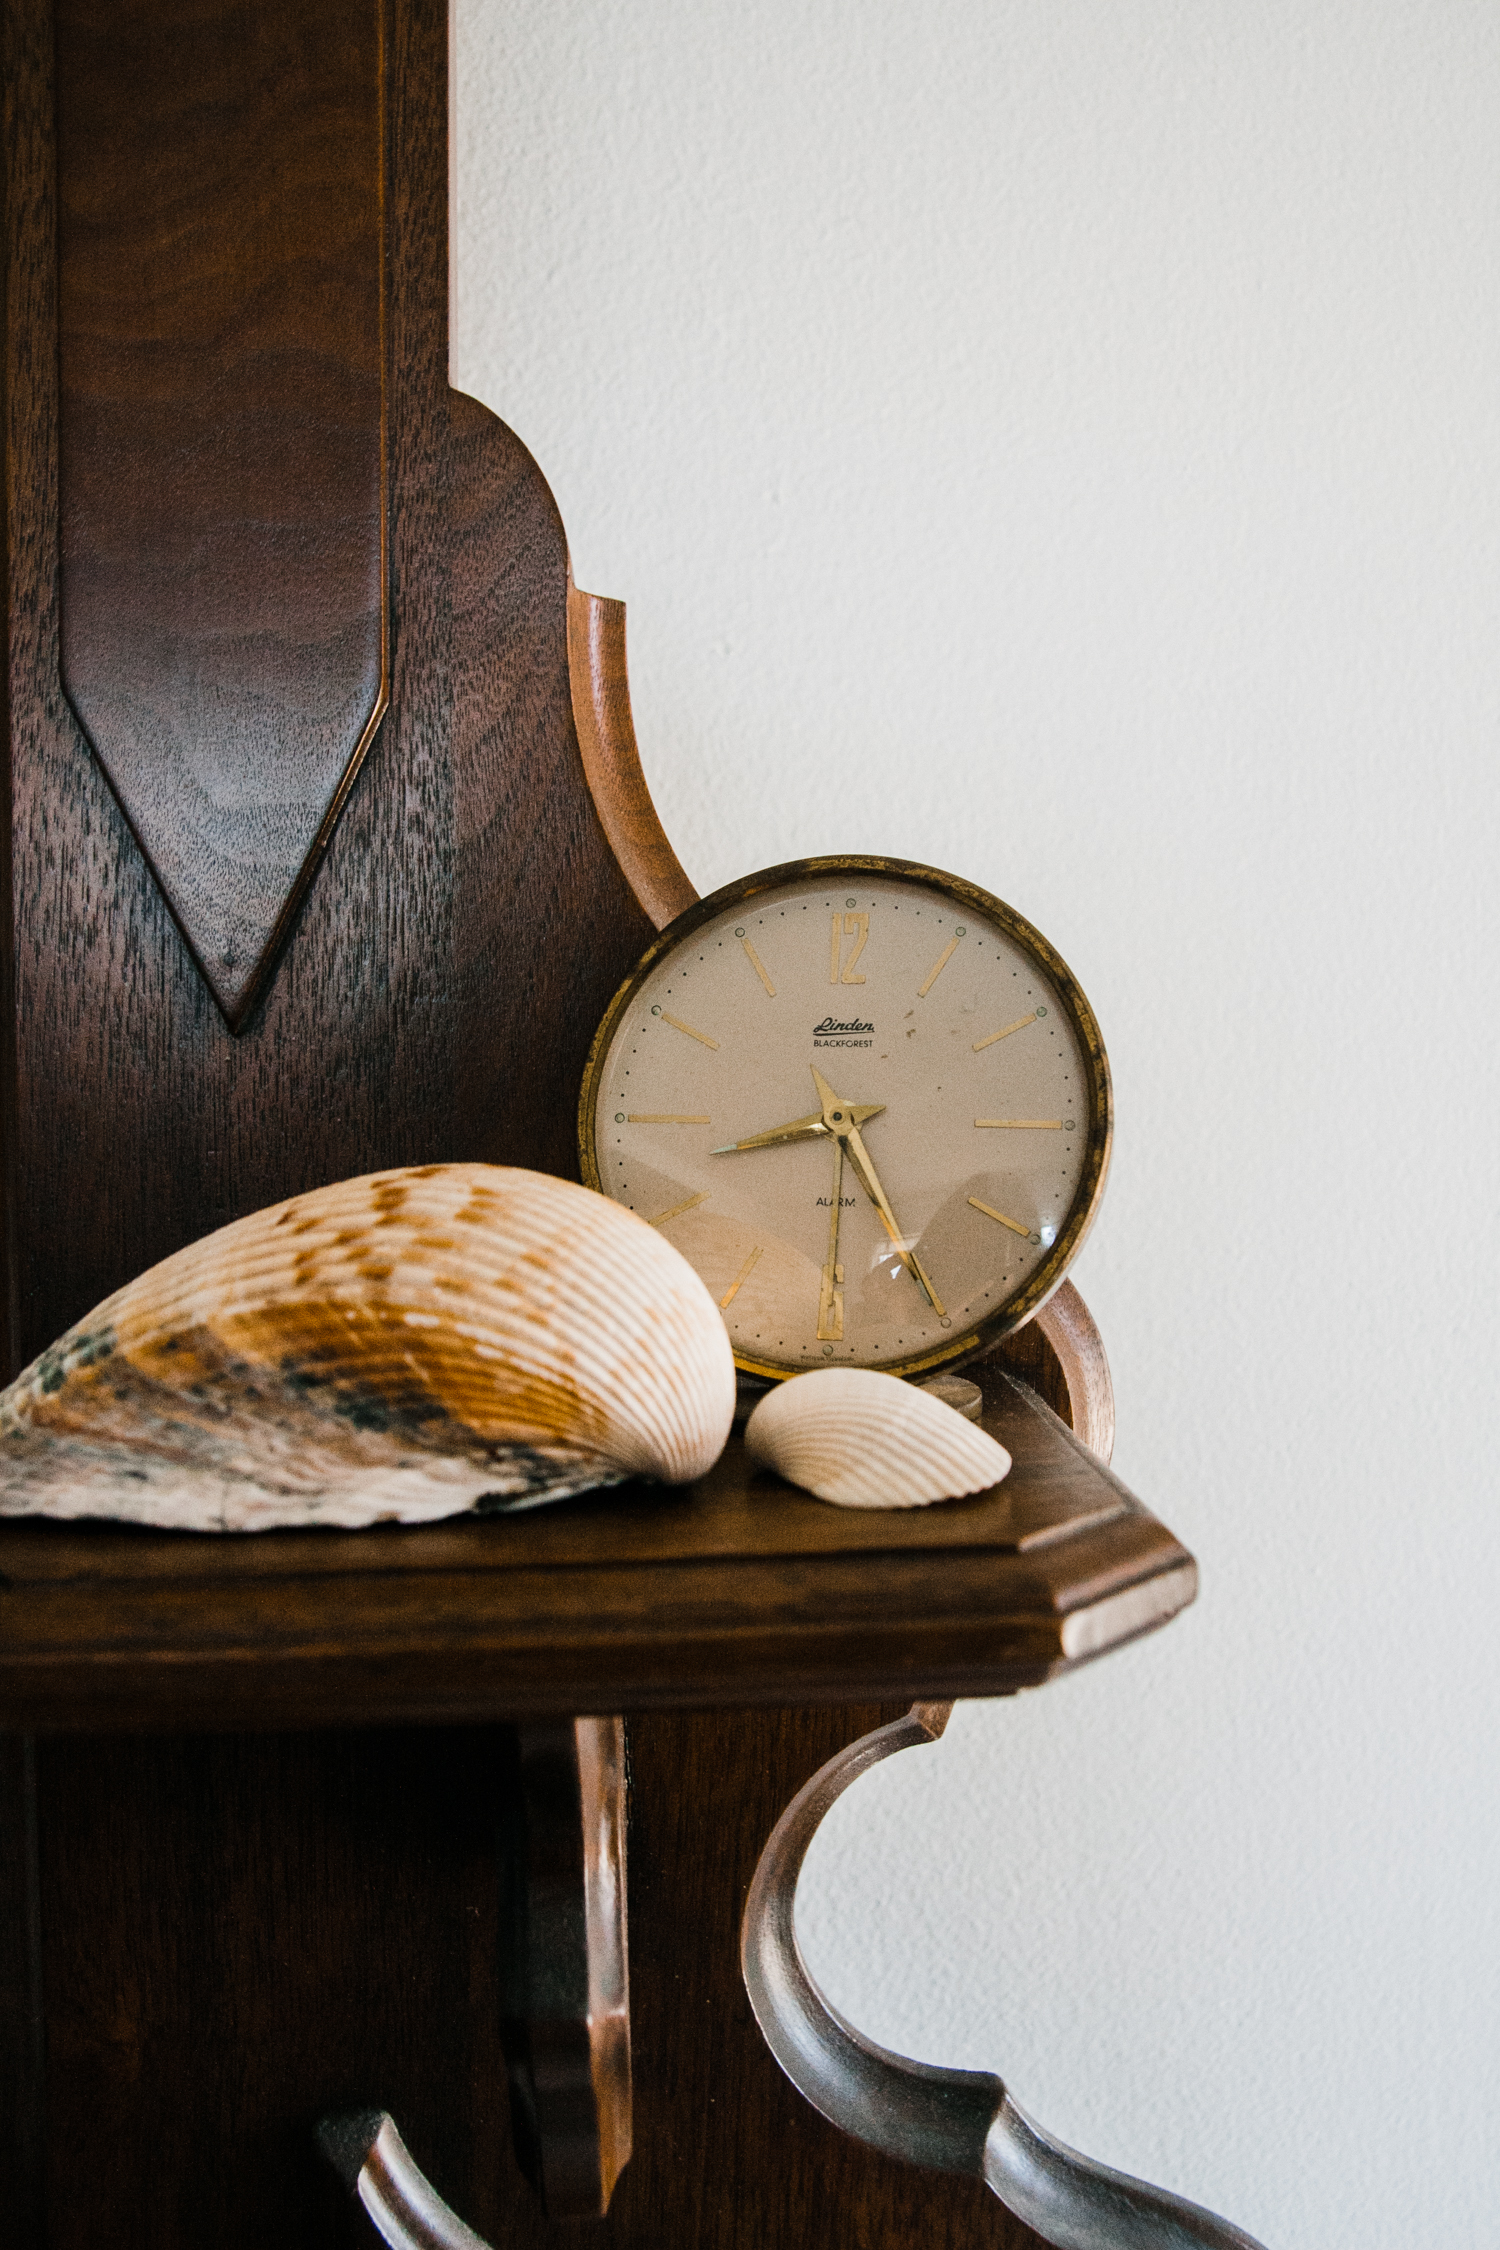 The seashells are from our family beach vacation. The vintage clock is from local shop  Jo & June.